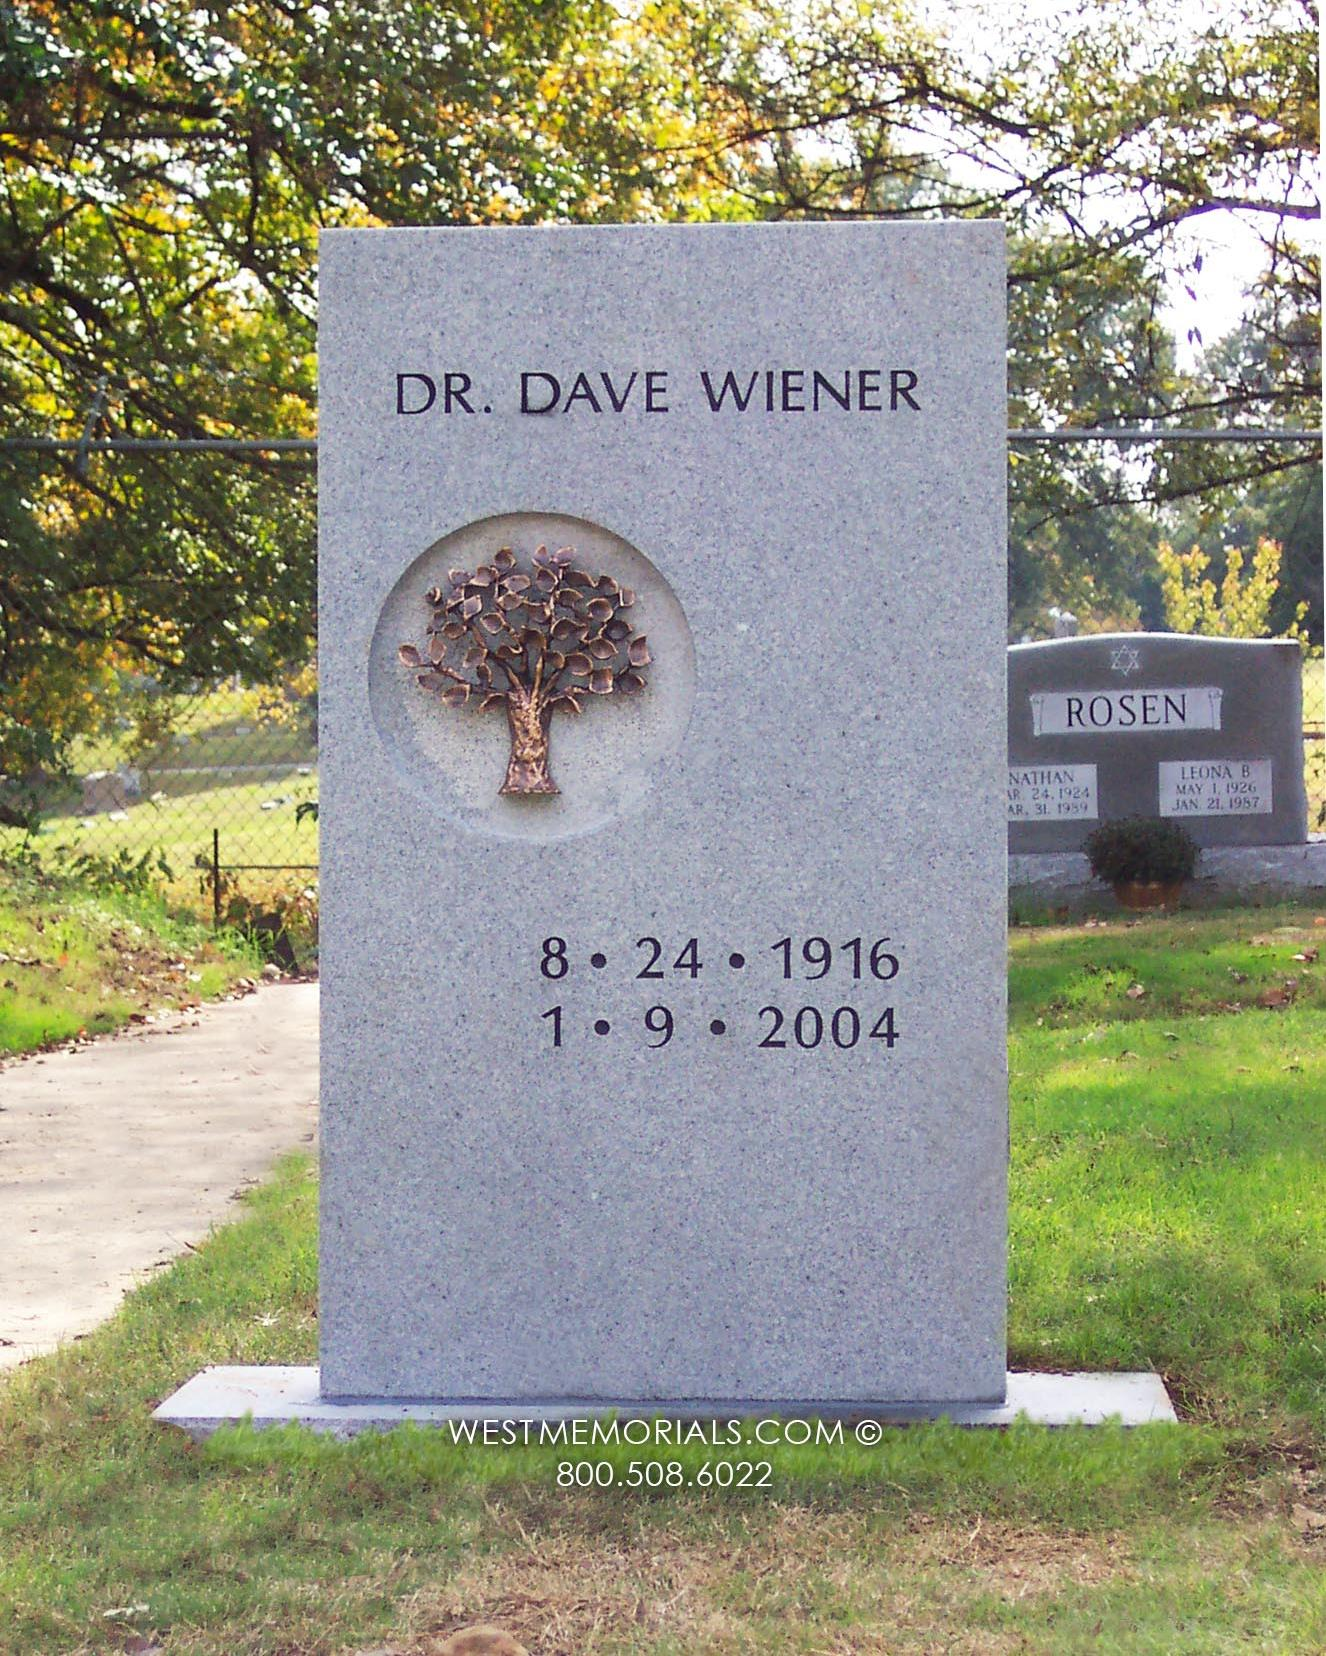 Wiener-headstone-gray-granite-bronze-tree-circle-simple-custom-West-Memorials-unique-memorial-stone-tribute-beautiful-tombstone-cemetery-tribute-grave